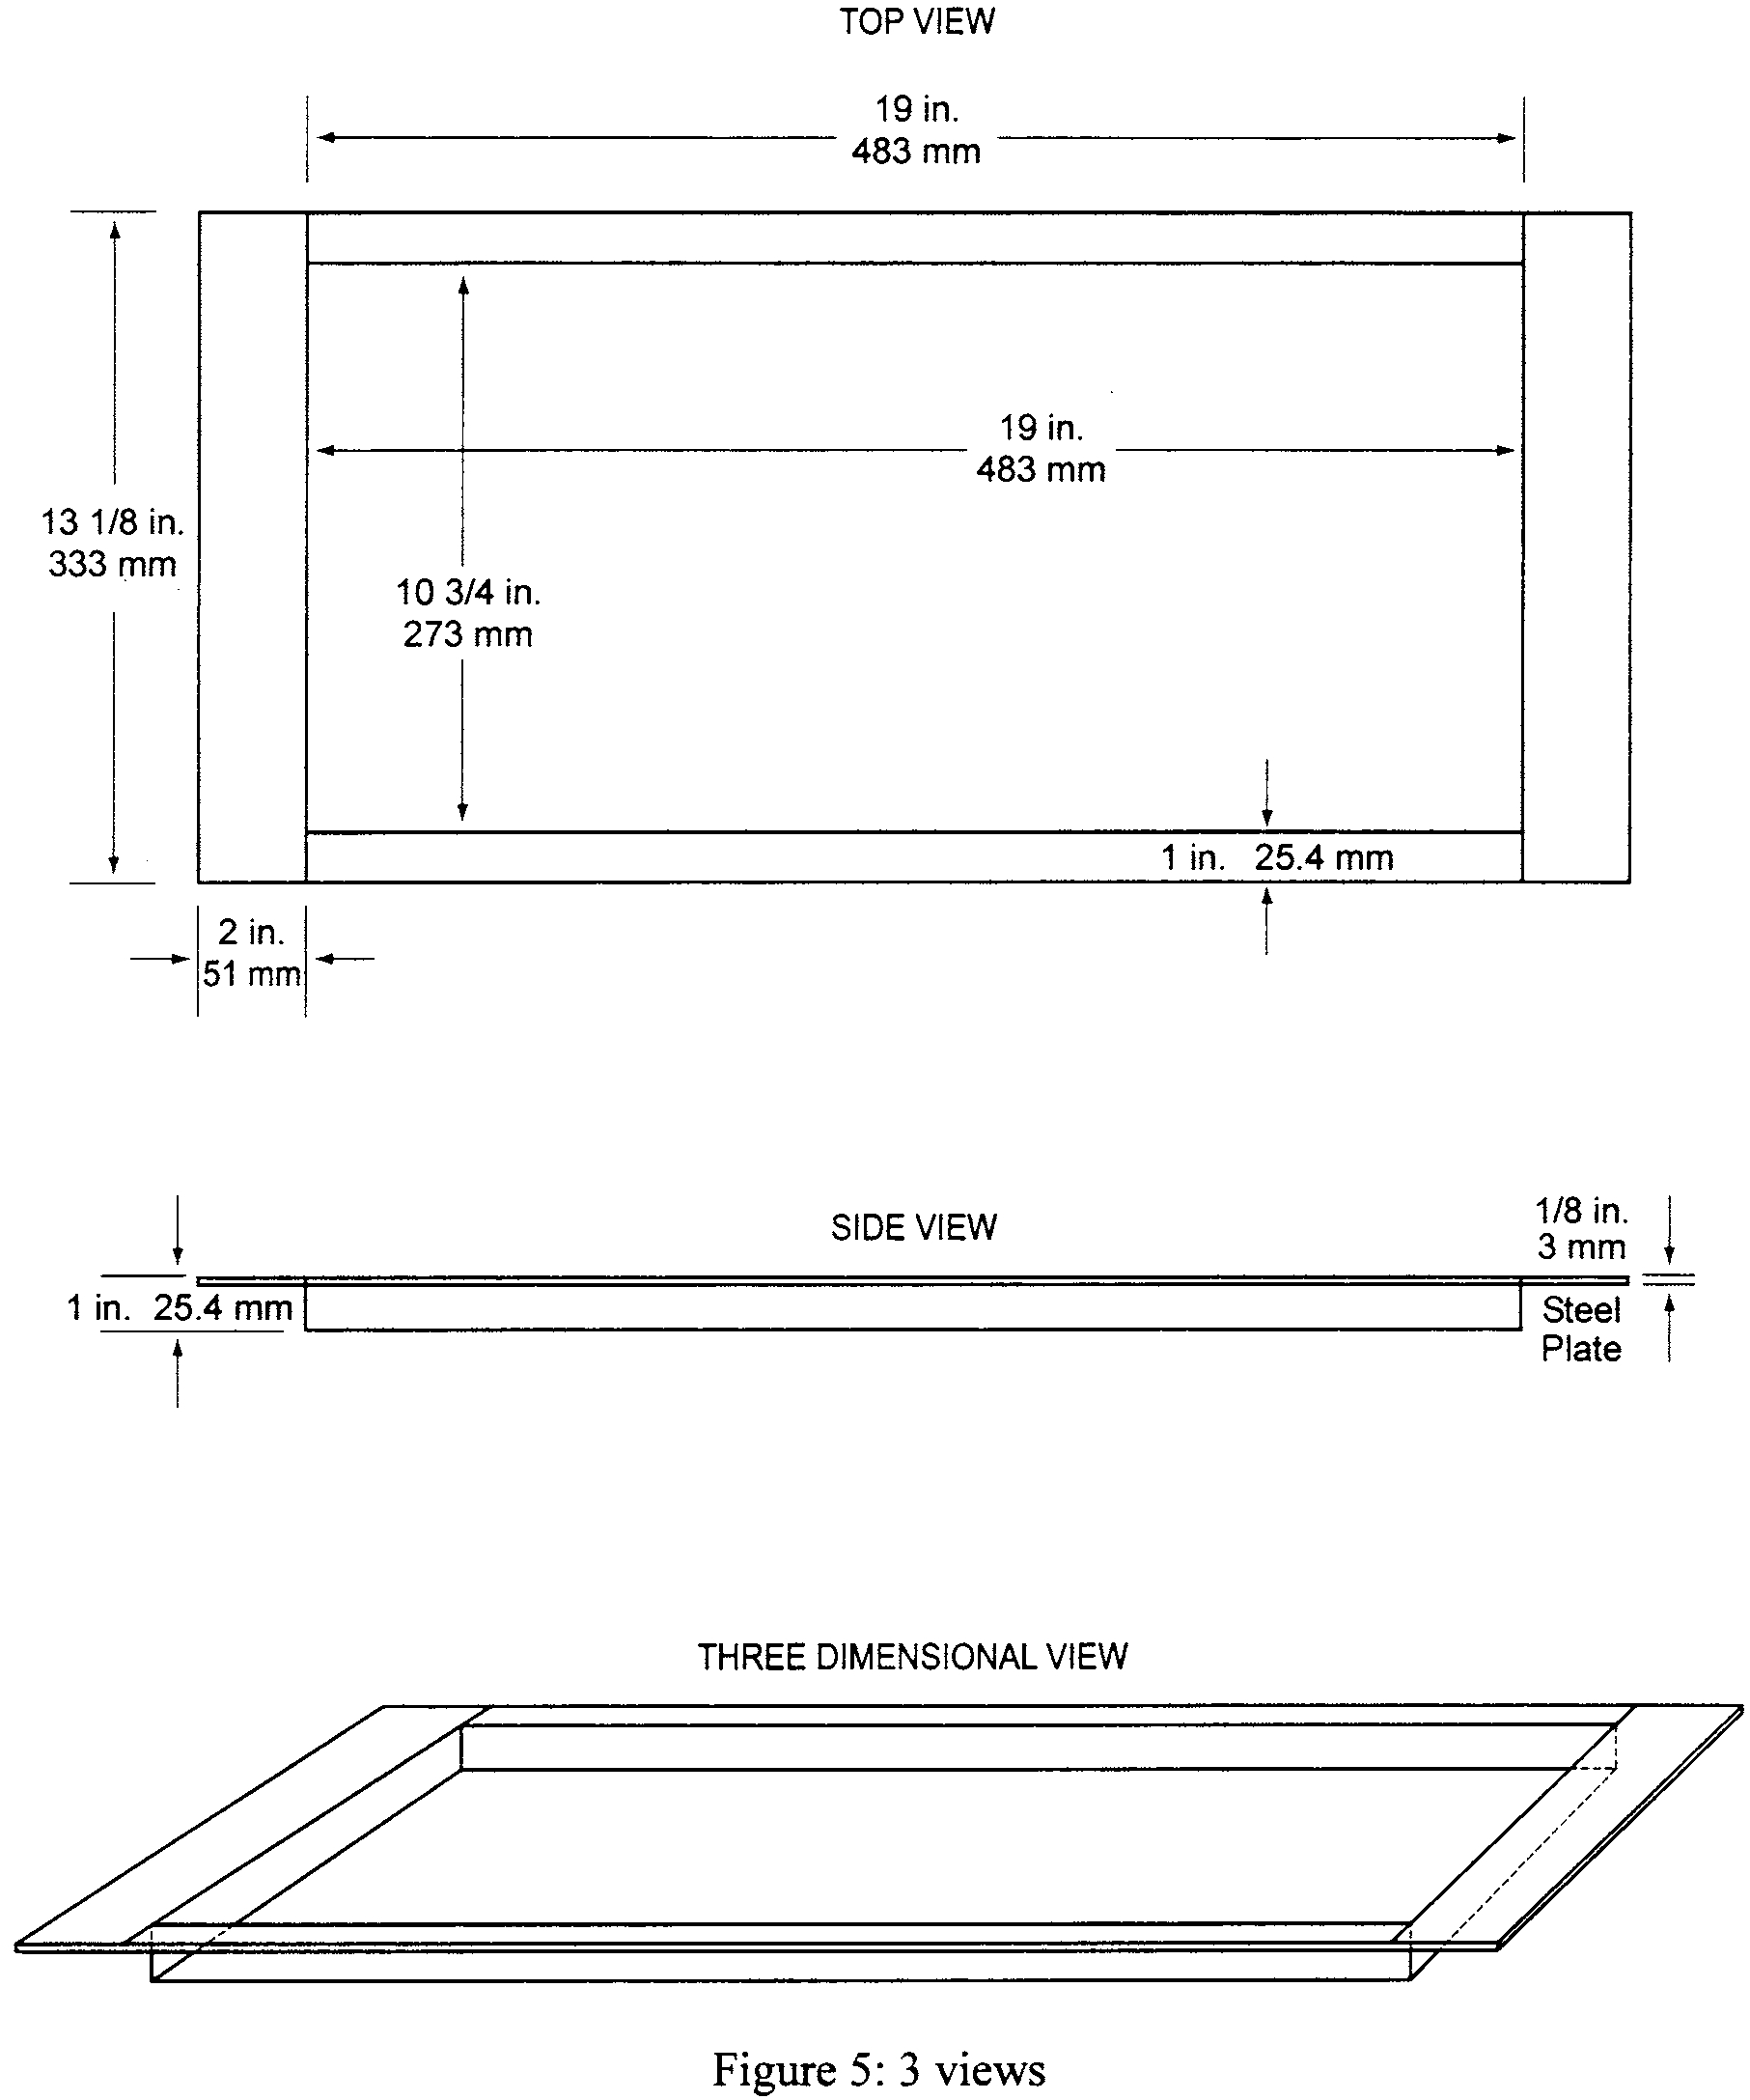 Graphic of (iii) Place the test specimen horizontally on the non-combustible board(s). Place a steel retaining/securing frame fabricated of mild steel, having a thickness of 1/8 inch (3.2 mm) and overall dimensions of 23 by 131/8 inches (584 by 333 mm) with a specimen opening of 19 by 103/4 inches (483 by 273 mm) over the test specimen. The front, back, and right portions of the top flange of the frame must rest on the top of the sliding platform, and the bottom flanges must pinch all 4 sides of the test specimen. The right bottom flange must be flush with the sliding platform. See figure 5.